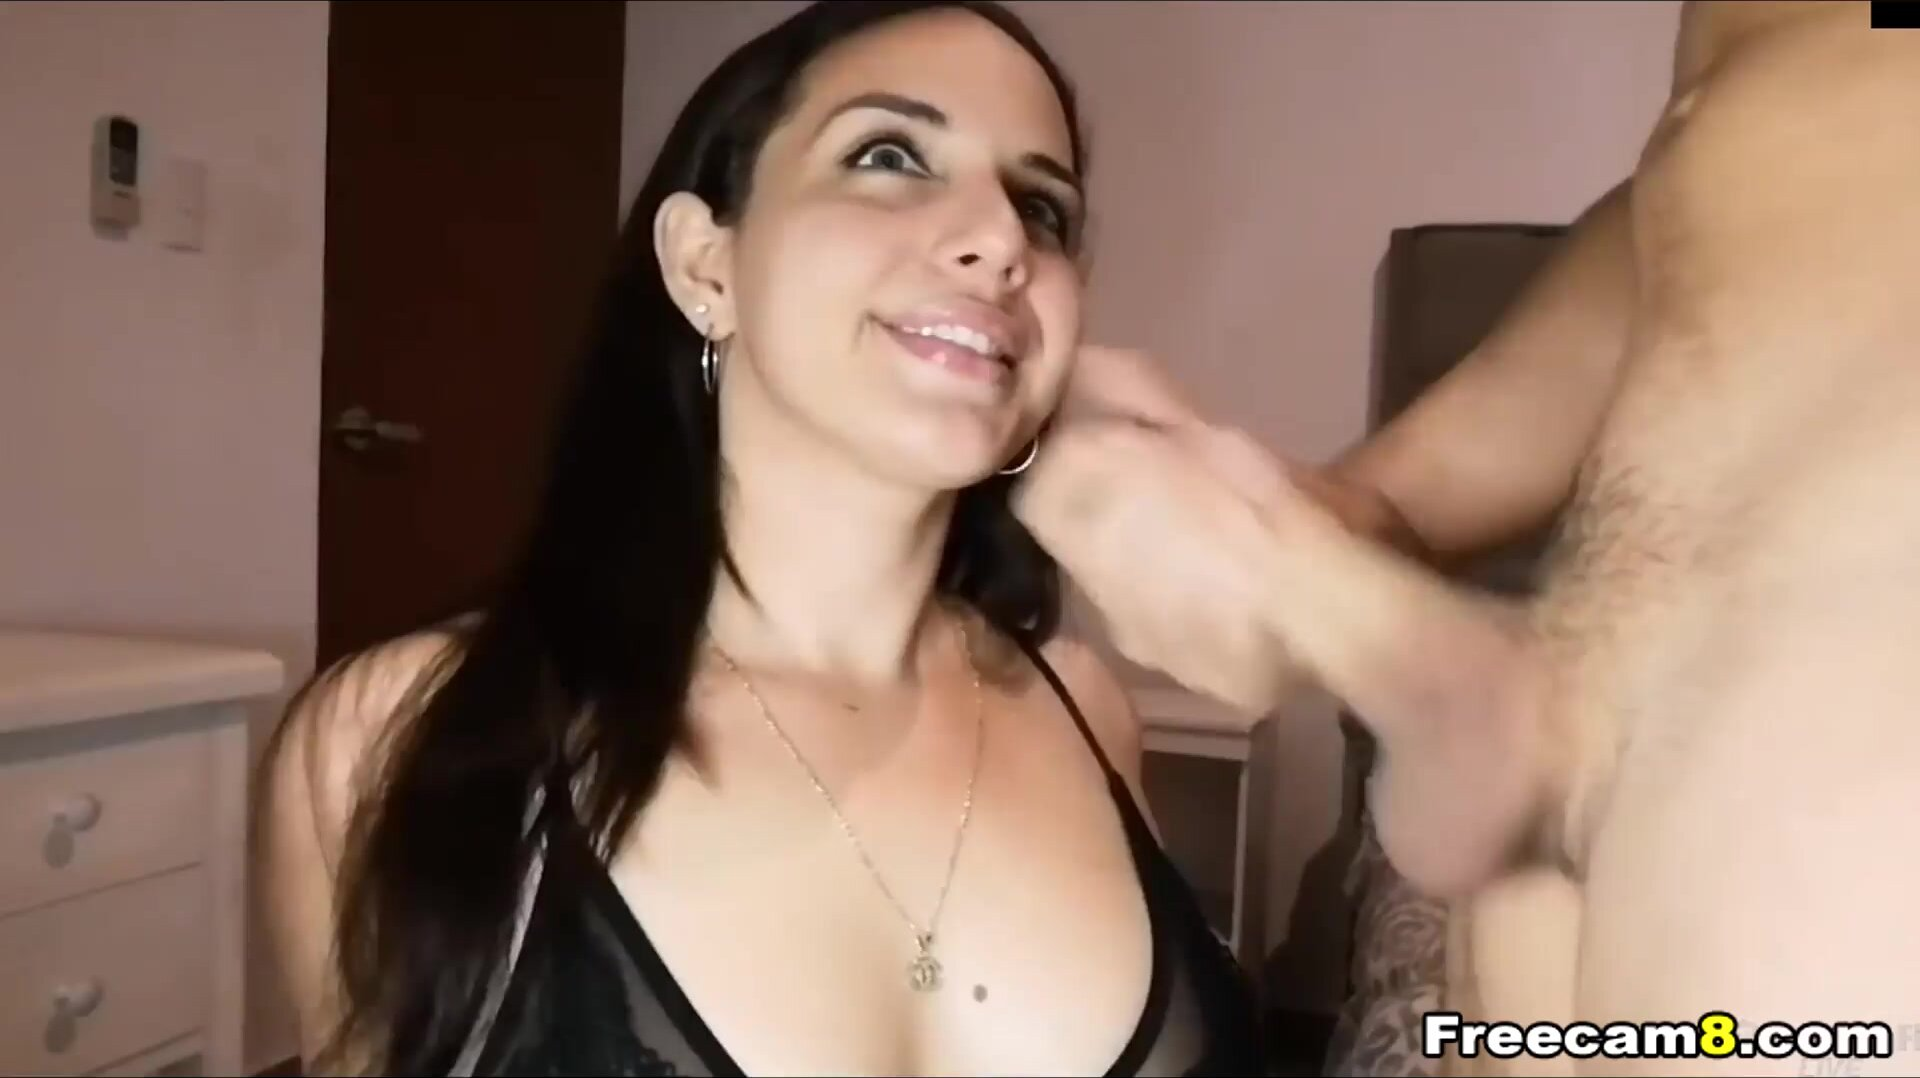 Pretty Brunette Gives a Handjob and BJ